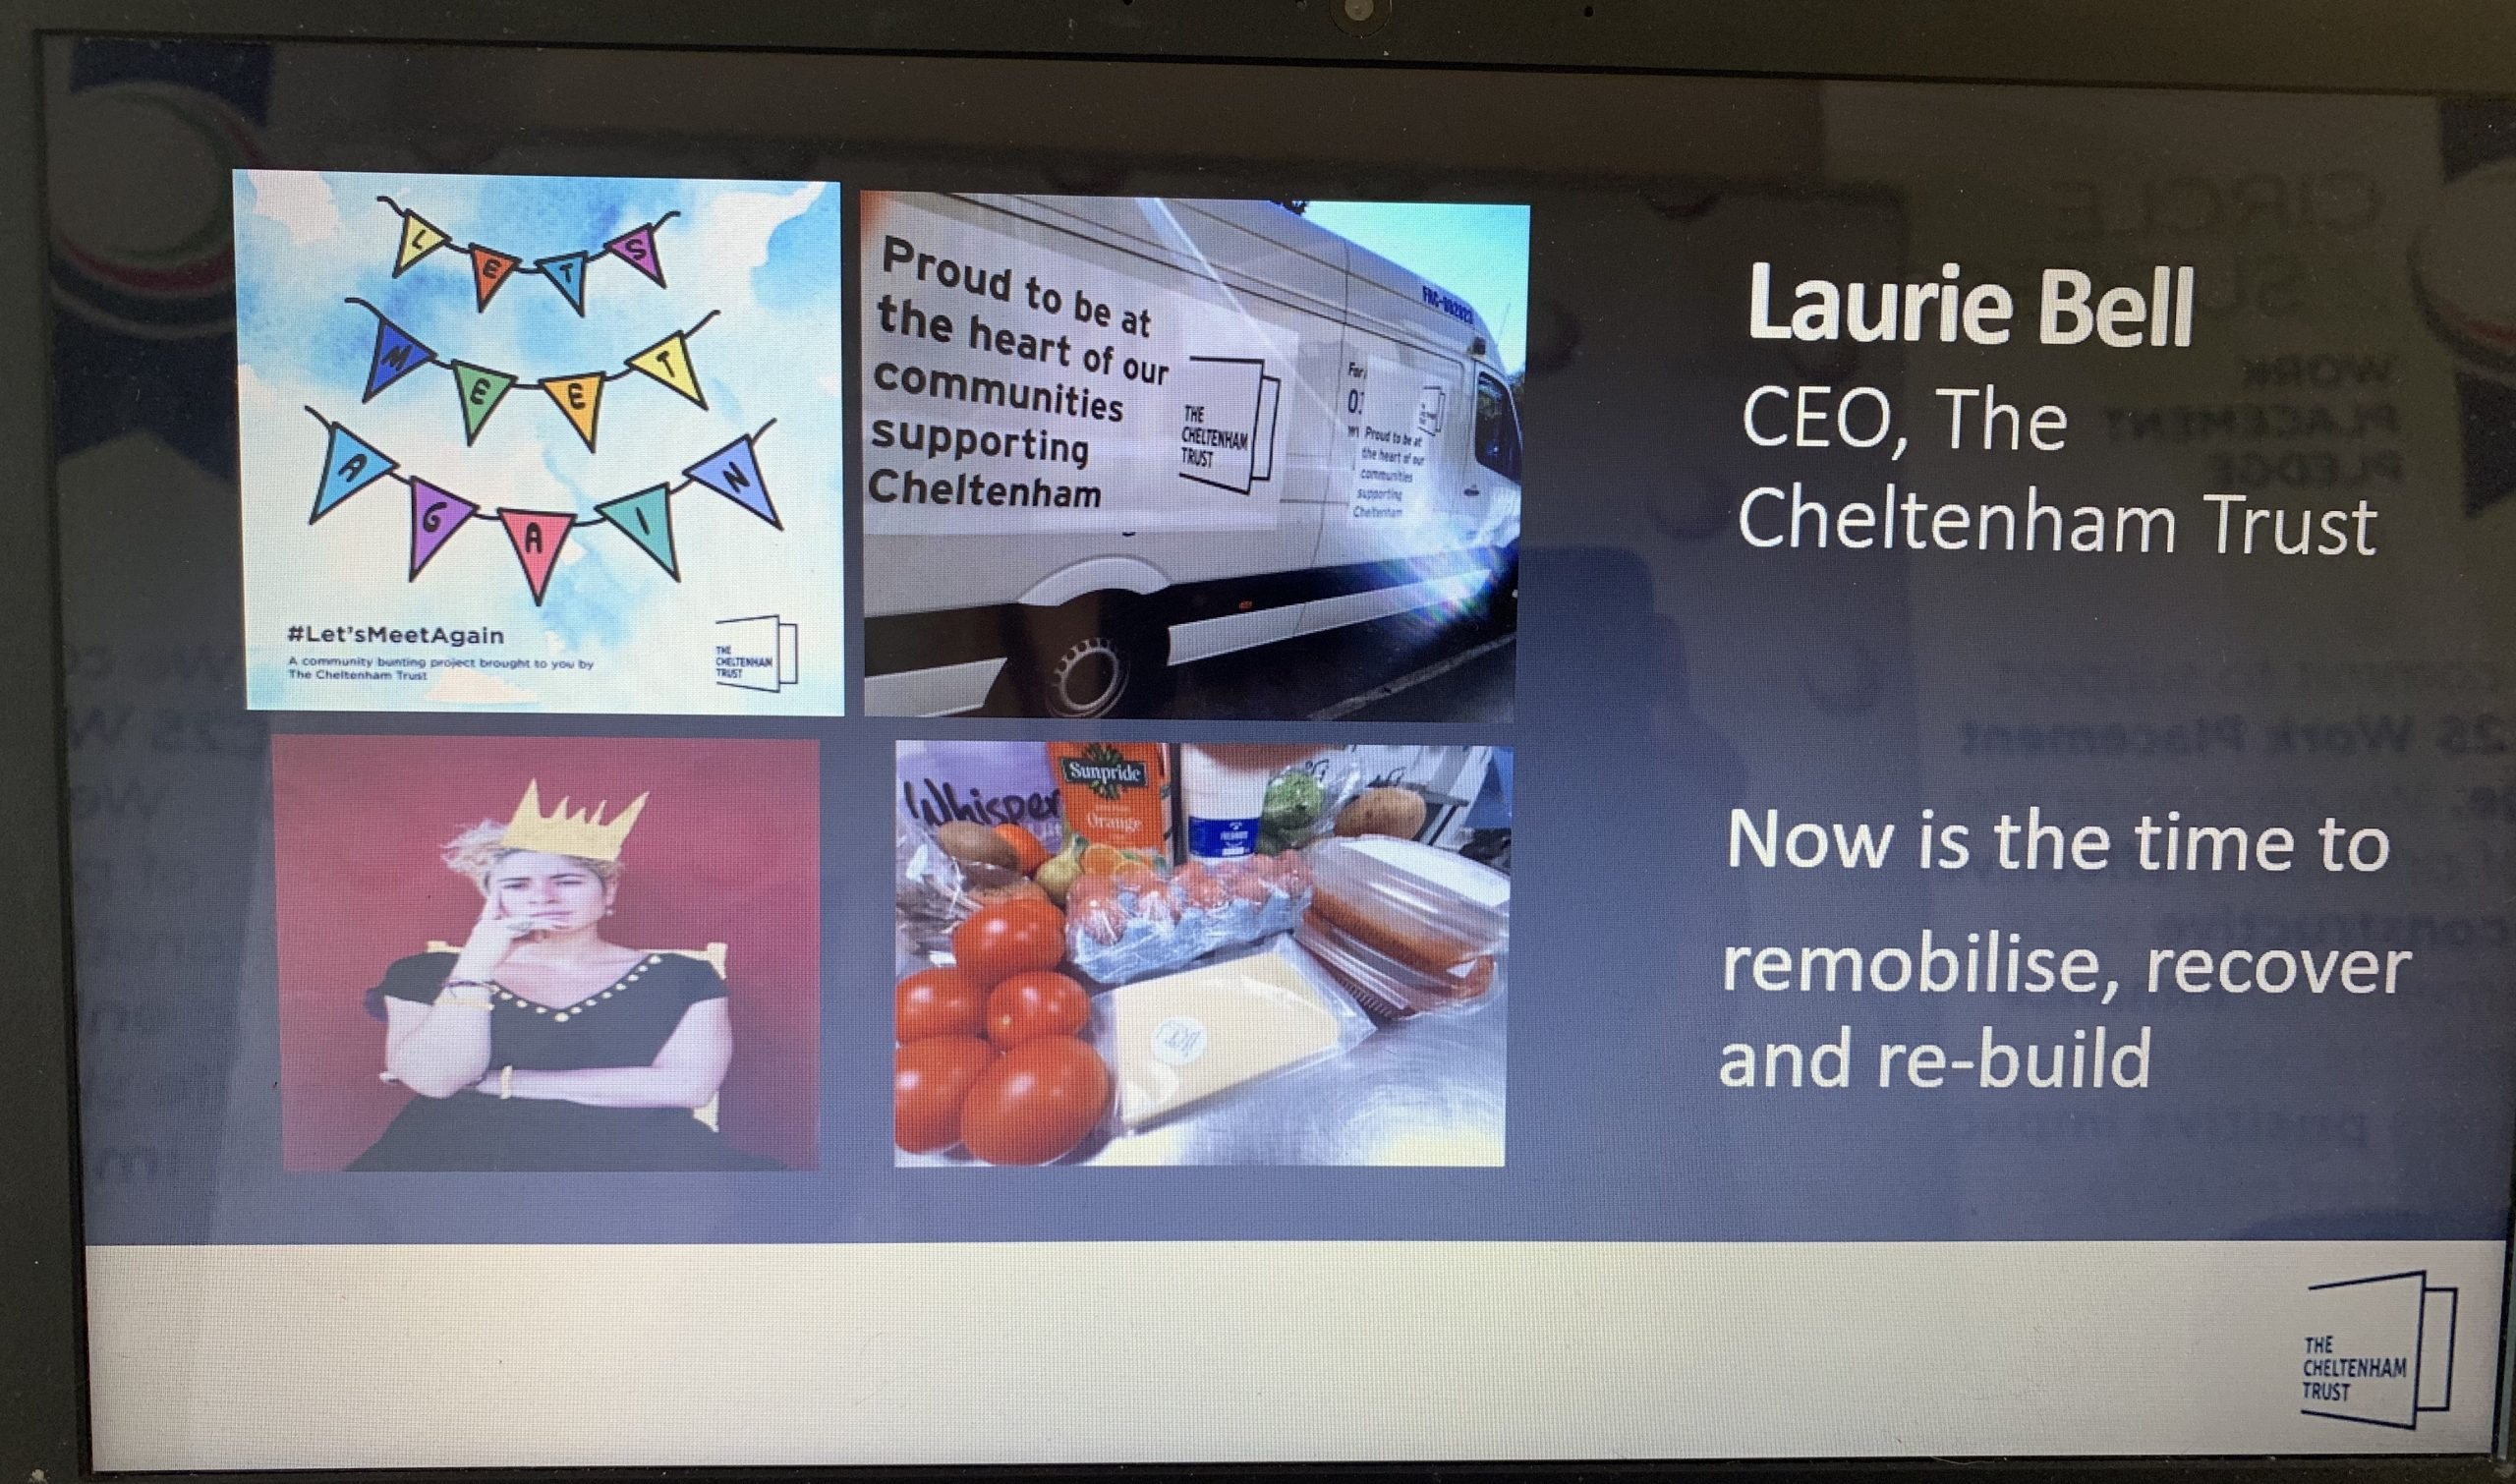 Virtual Leaders Forum on Recovery with Laurie Bell, CEO Cheltenham Trust – Outstanding!